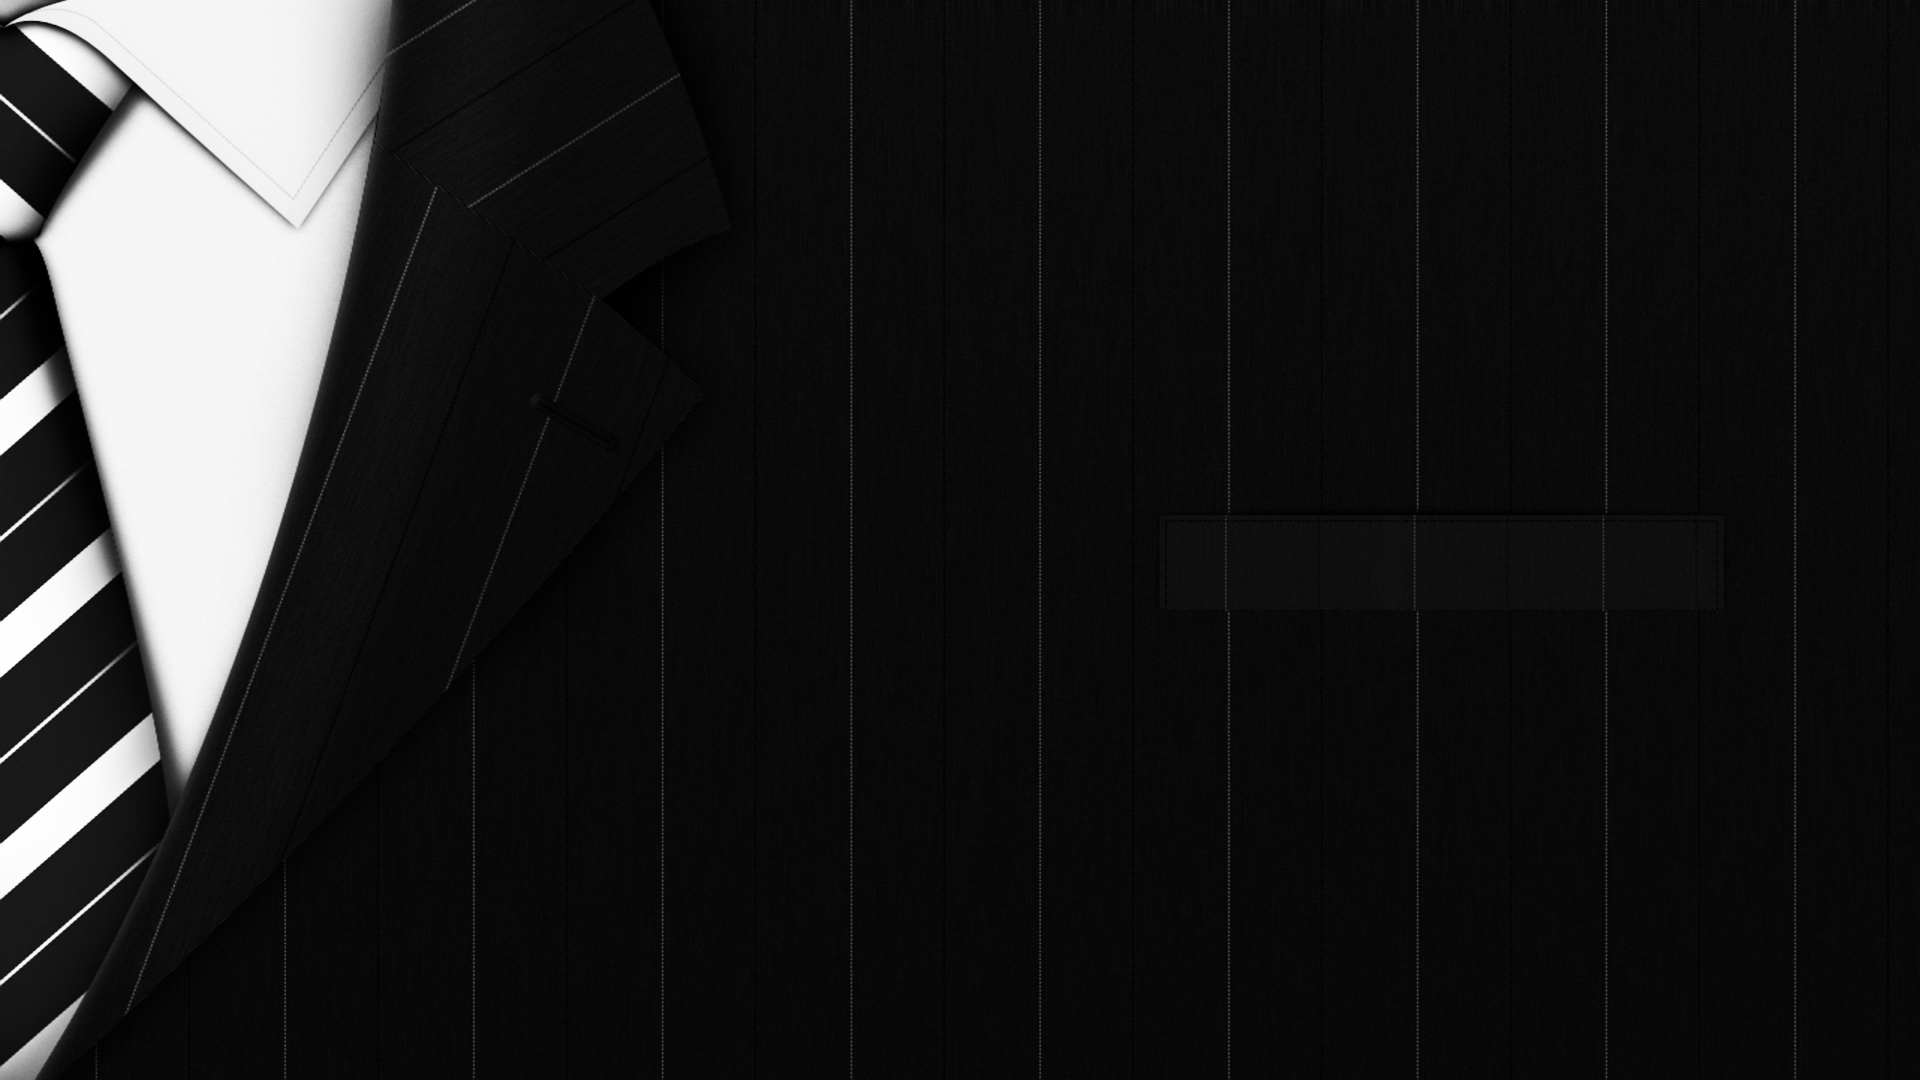 10 Suit upAndroid Homescreen by bazsi44MyColorscreen 1570 :: Suit Up ...: digitalresult.com/view/10-suit-up-wallpaper